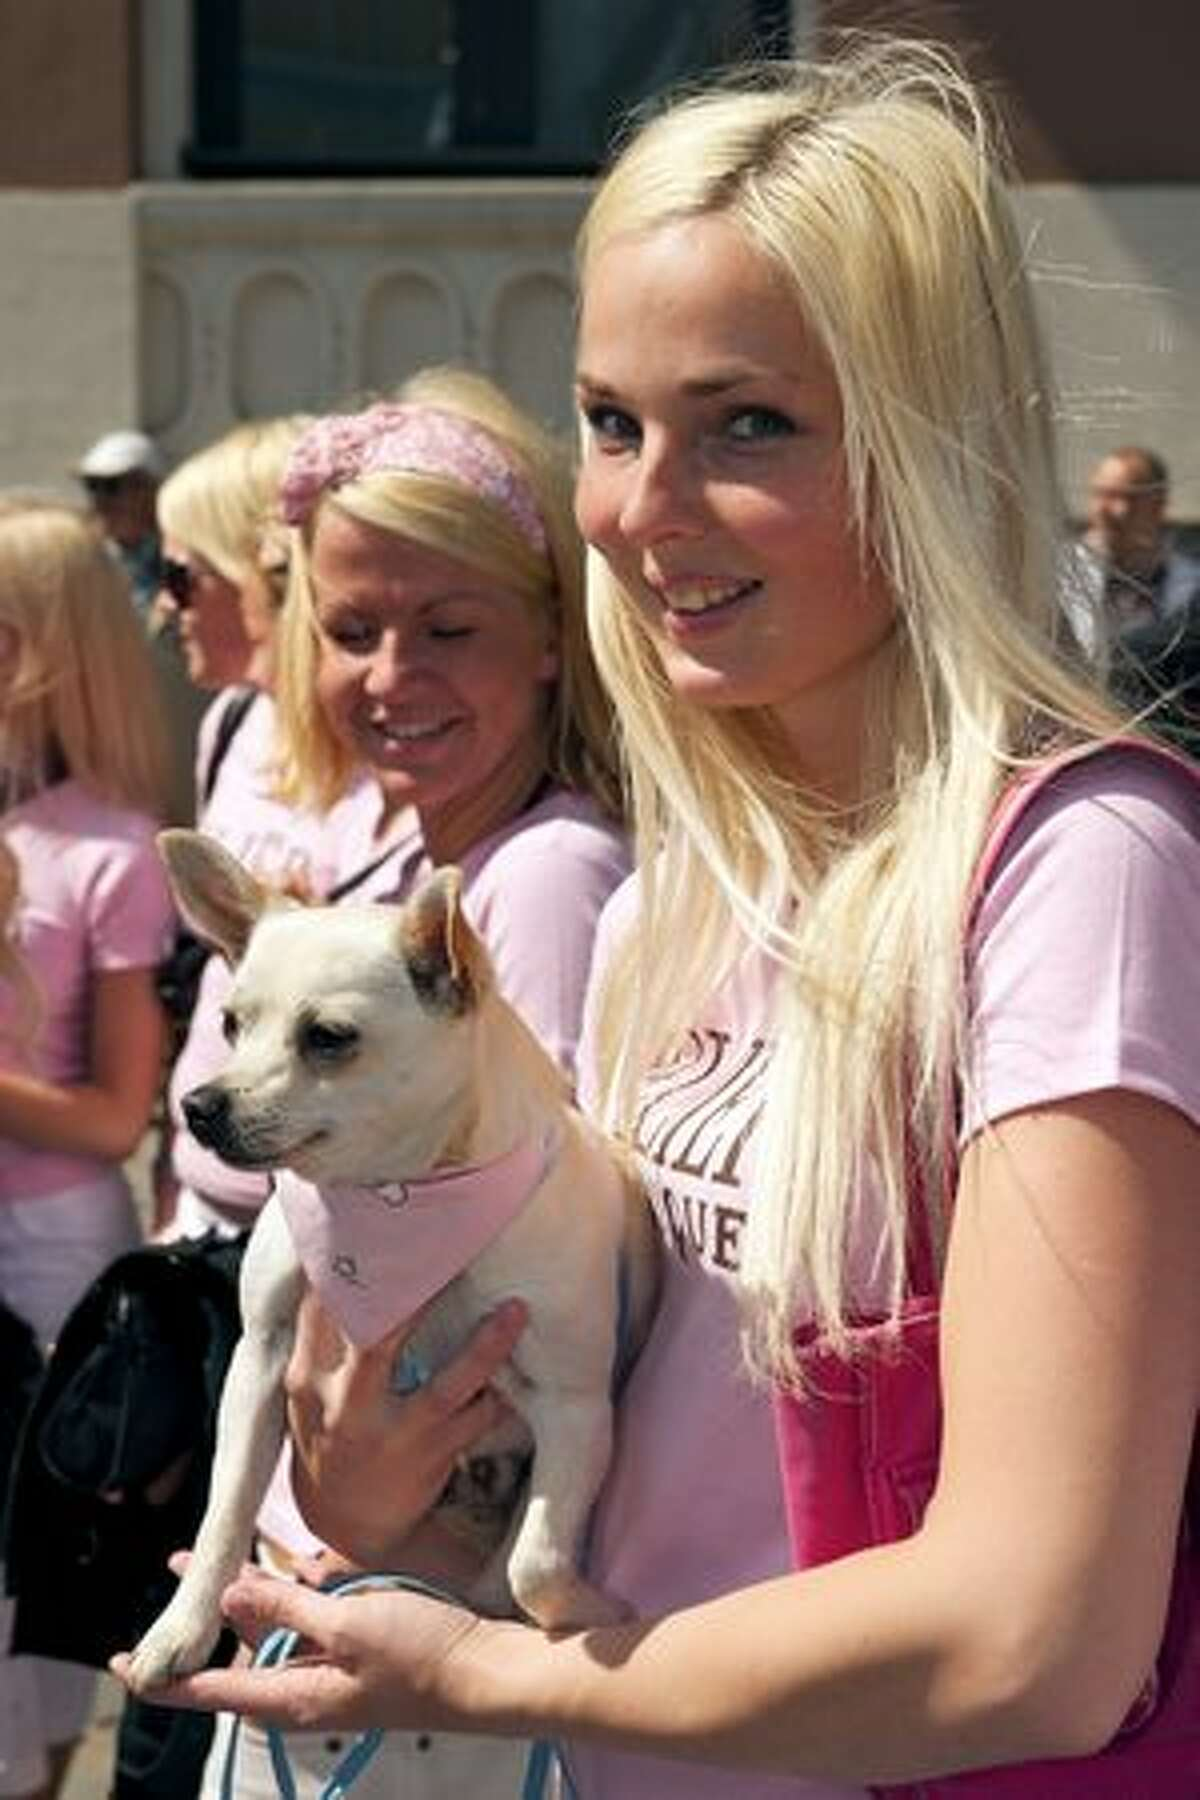 A Blond woman poses with her dog as they parade through the streets of Latvia's capital Riga during a Blond weekend.